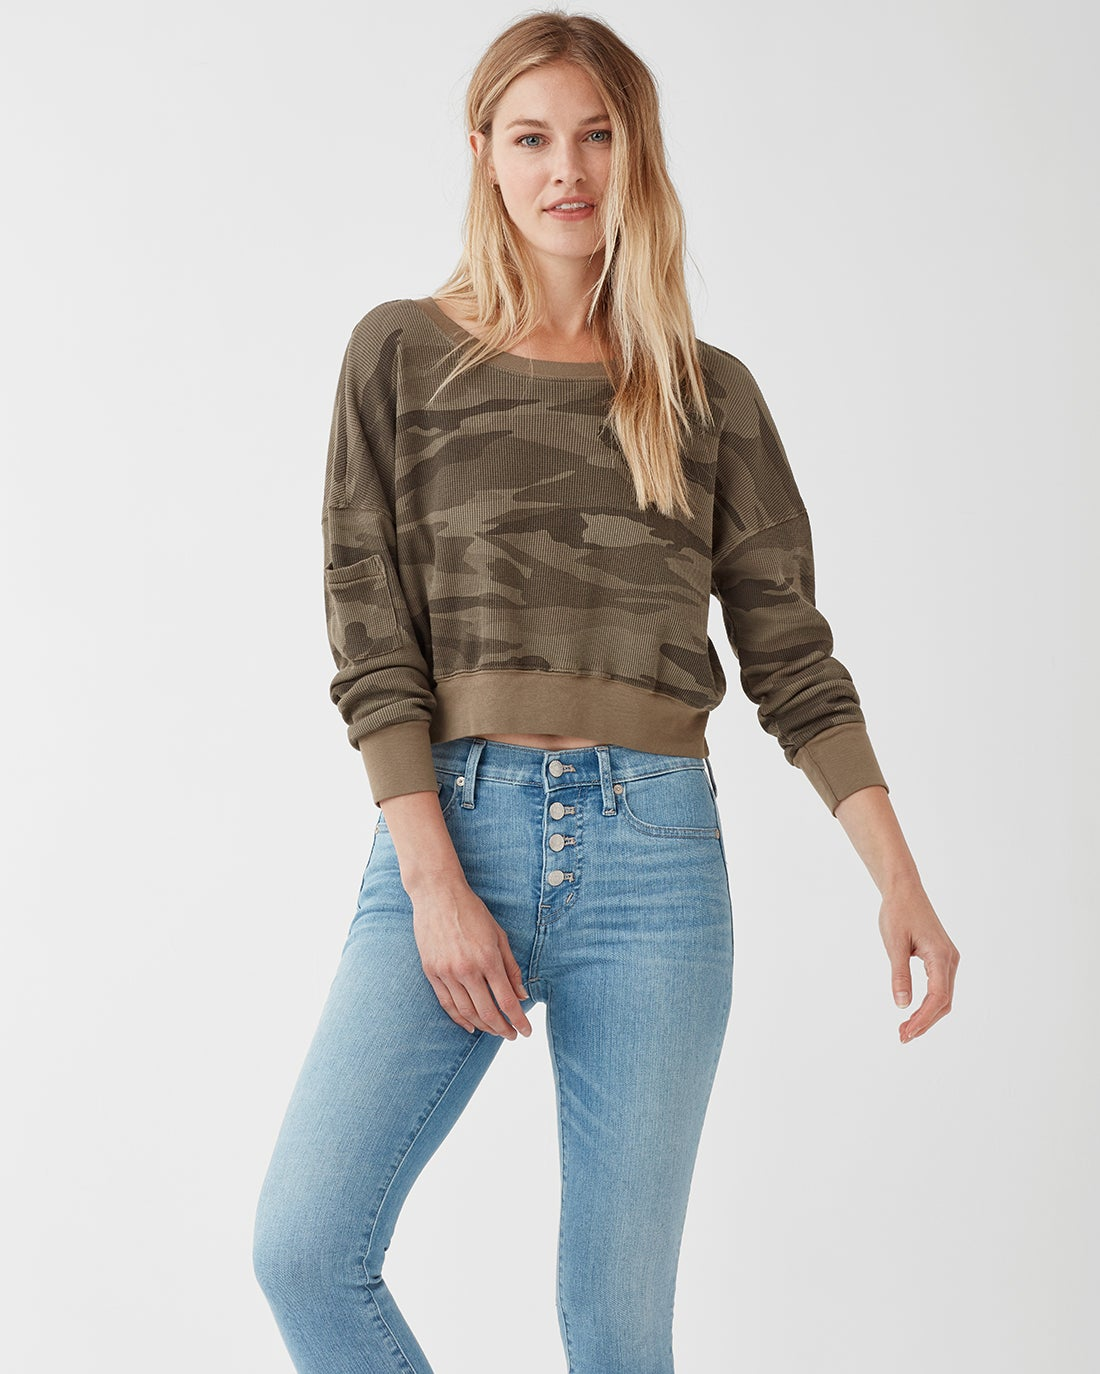 Splendid Women's Camo Thermal Wedge Crop Top